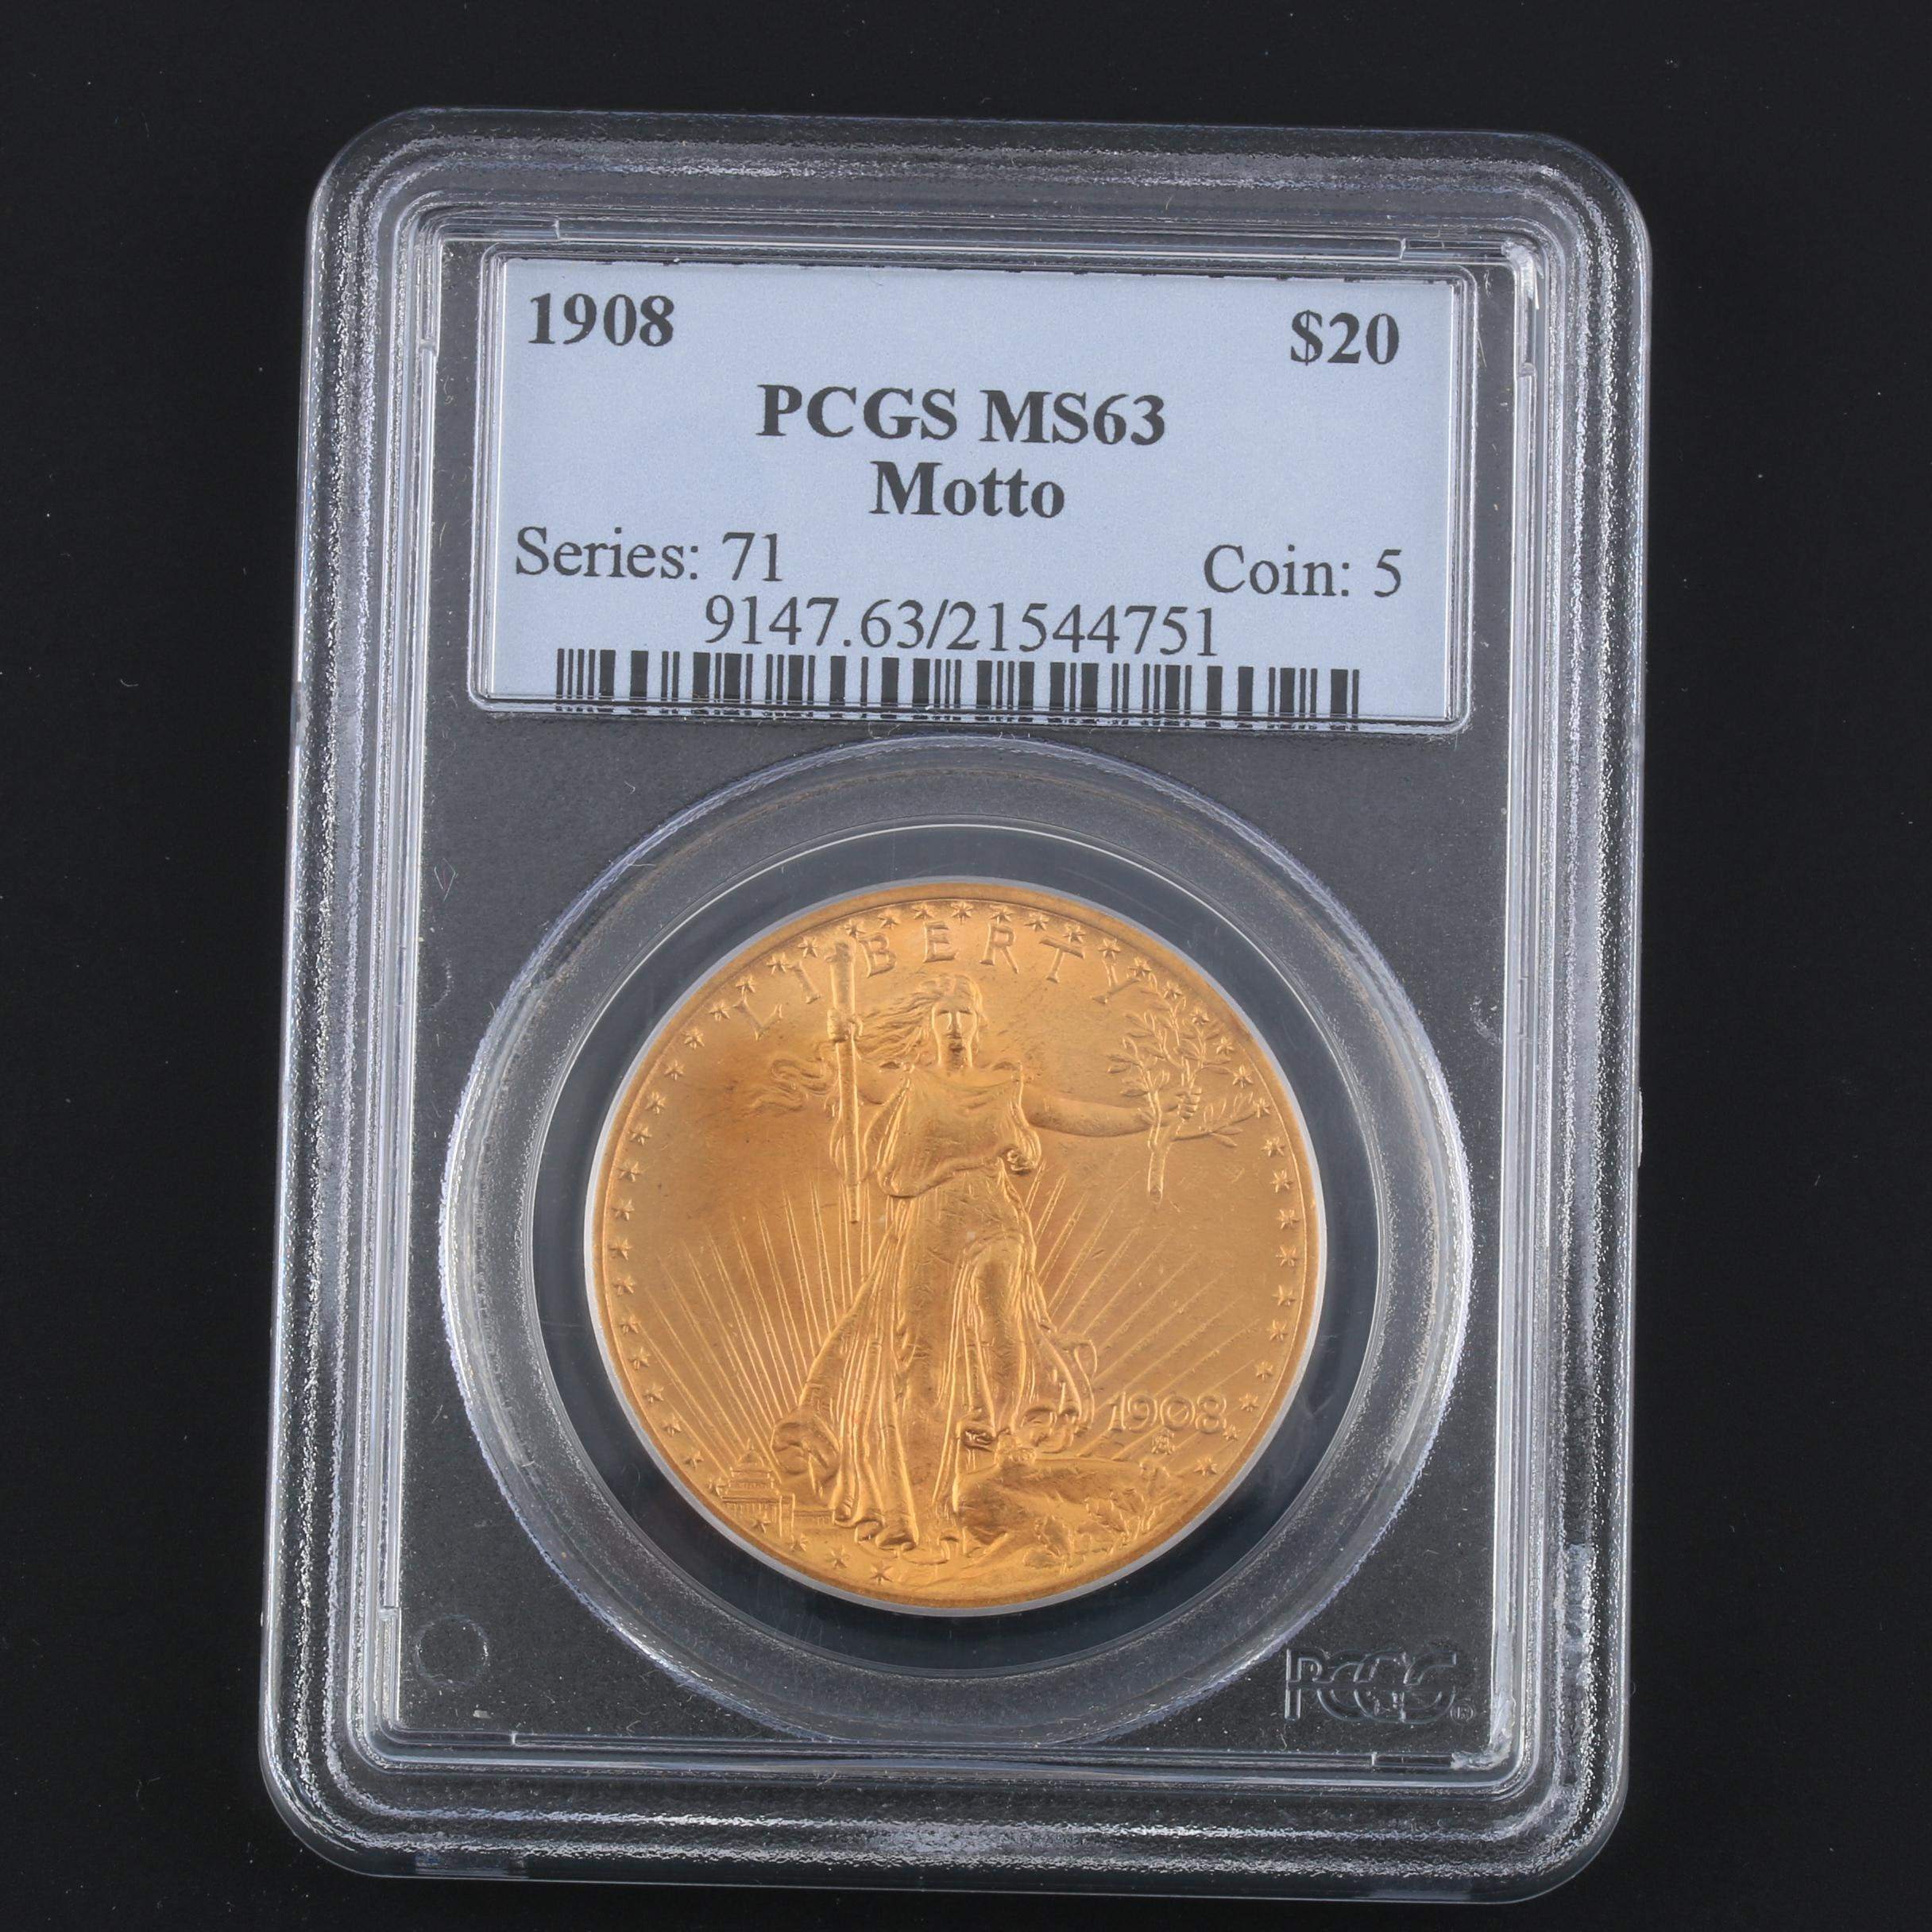 PCGS Graded MS63 1908 Saint Gaudens Gold Double Eagle